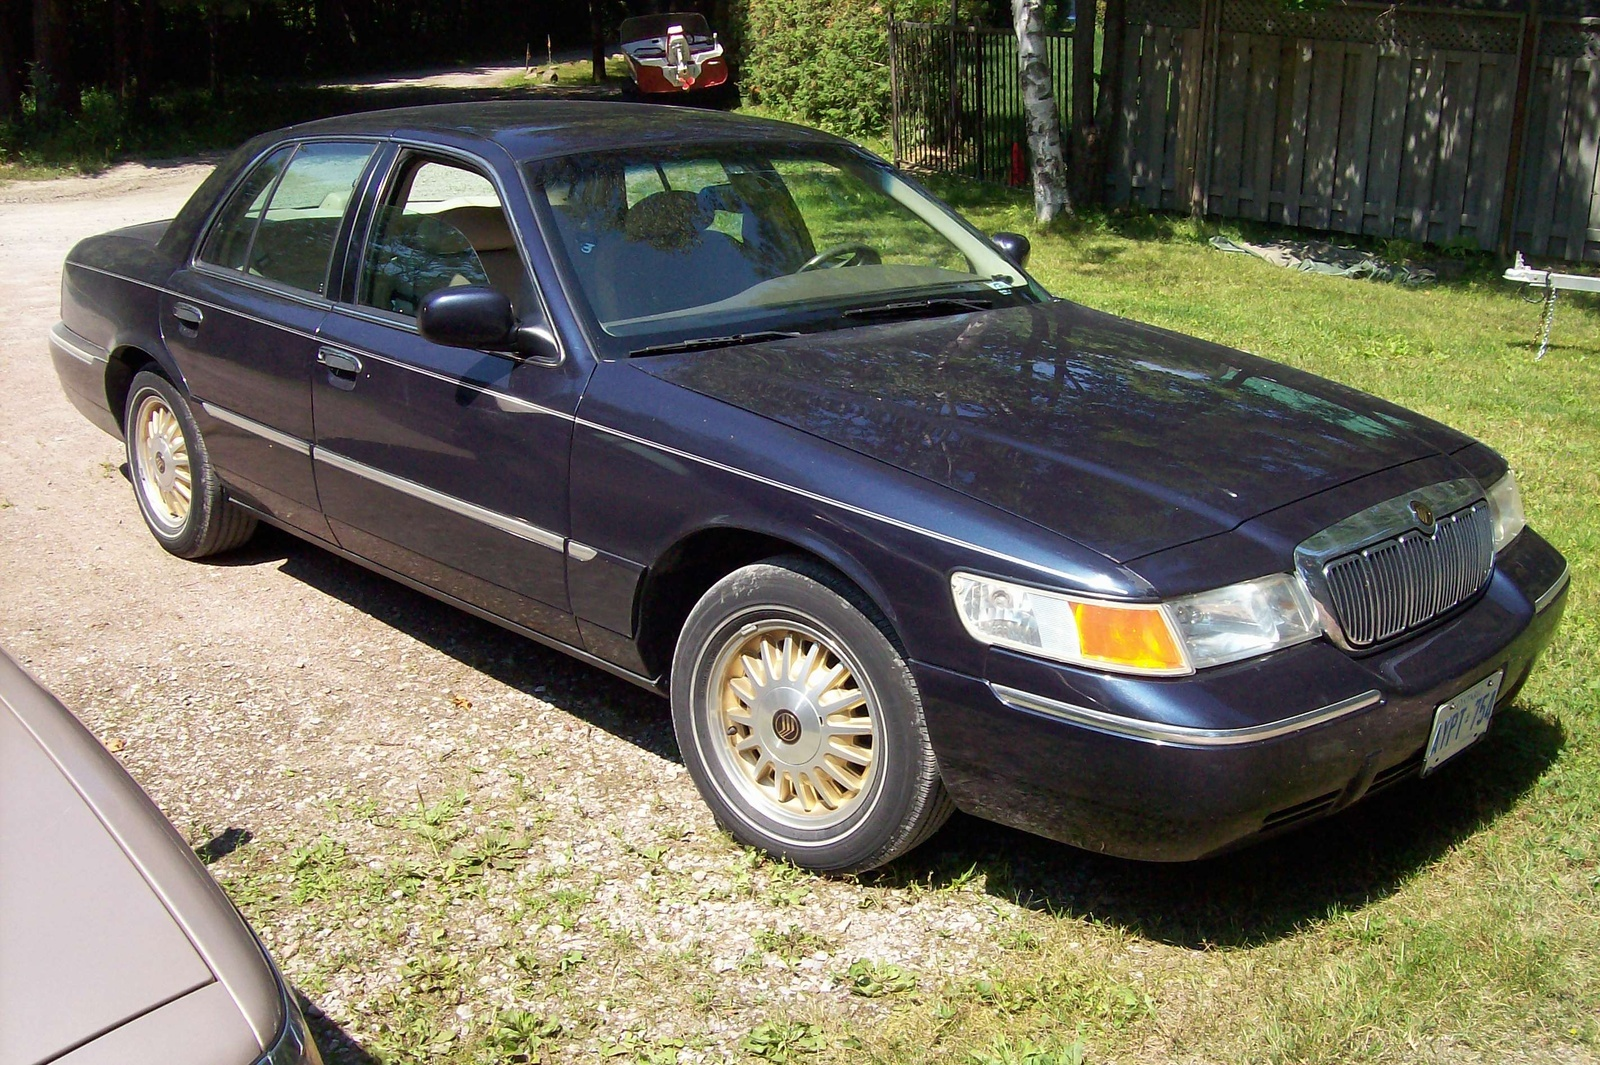 1999 Lincoln Town Car User Reviews Cargurus